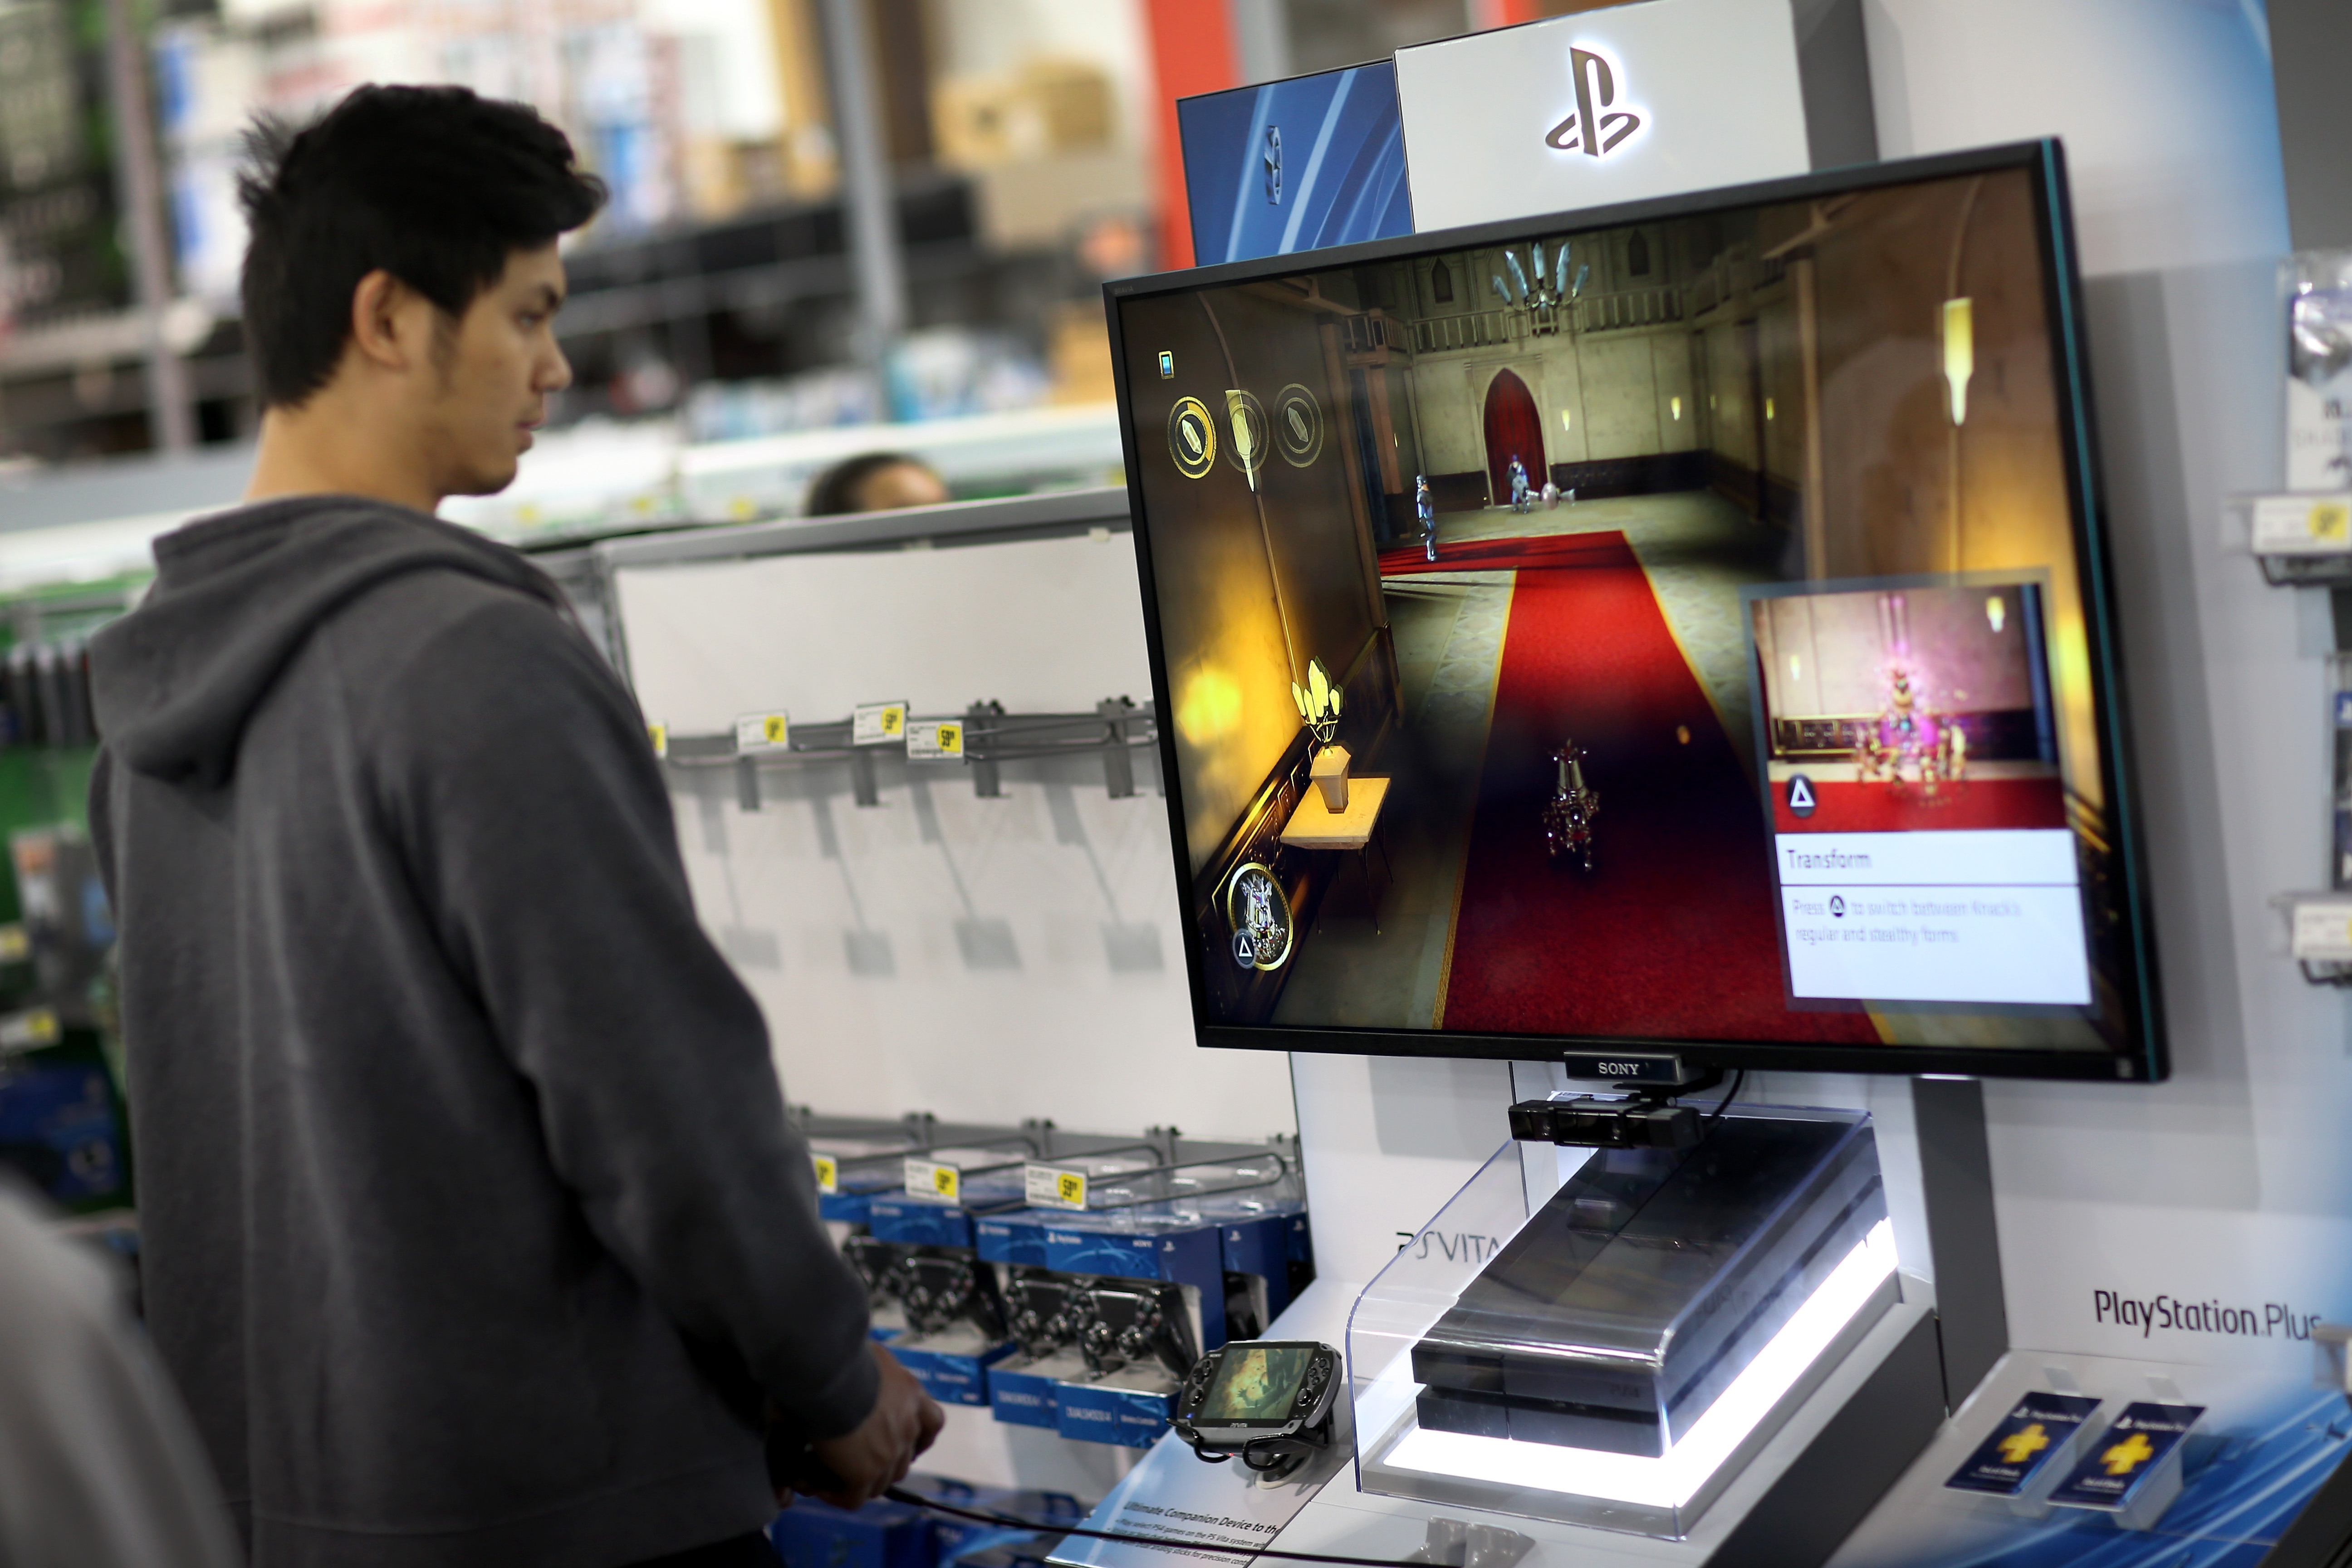 PEMBROKE PINES, FL – NOVEMBER 15: Dennis Lacson plays the new Sony Playstation 4 that is on display at Best Buy after they went on sale at midnight on November 15, 2013 in Pembroke Pines, Florida. PlayStation 4 is the follow-up to the company's PlayStation 3 and is priced at $400.  (Photo by Joe Raedle/Getty Images)